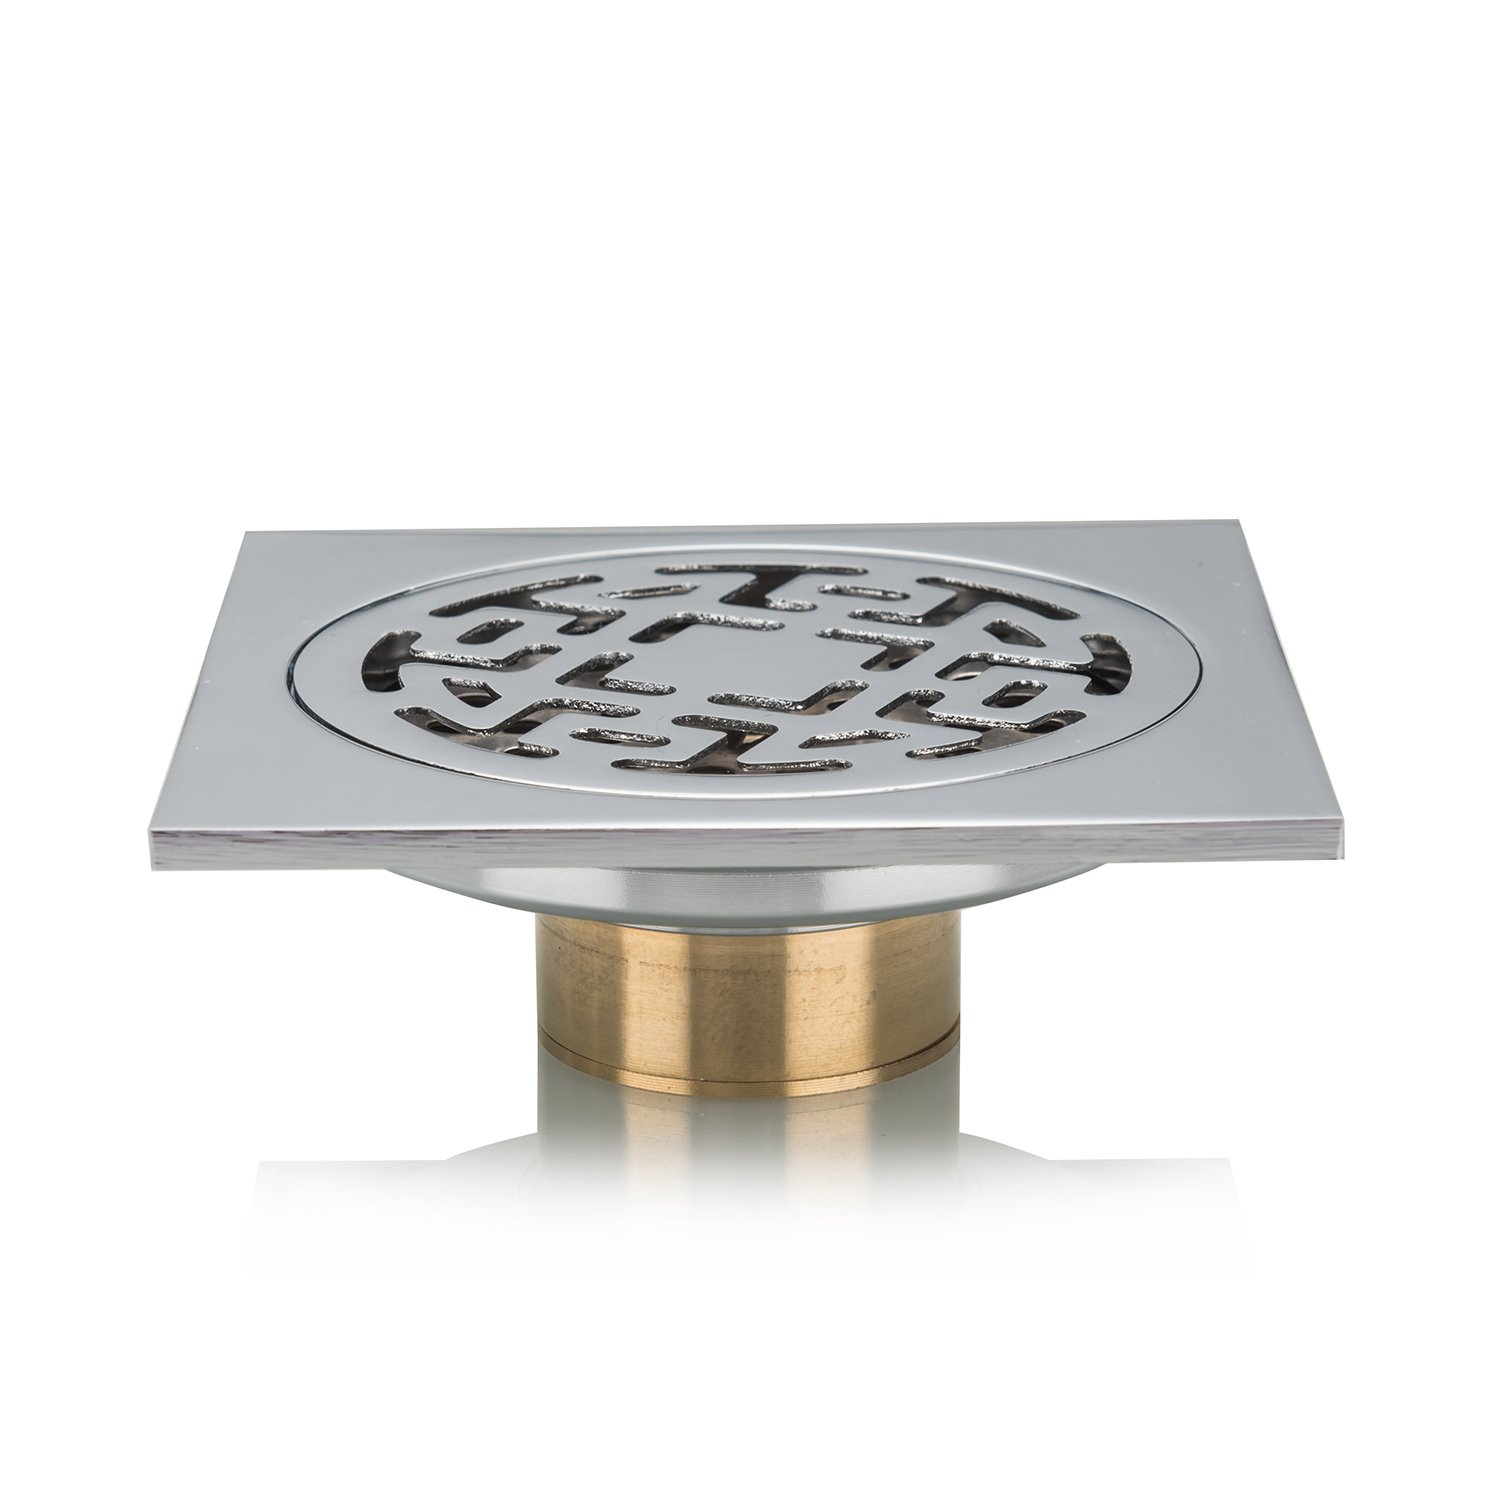 Toilet Kitchen Tinya Anti-Odor Invisible Shower Drain Full Copper Rustproof Floor Drain with Removable Strainer for Bathroom FD004